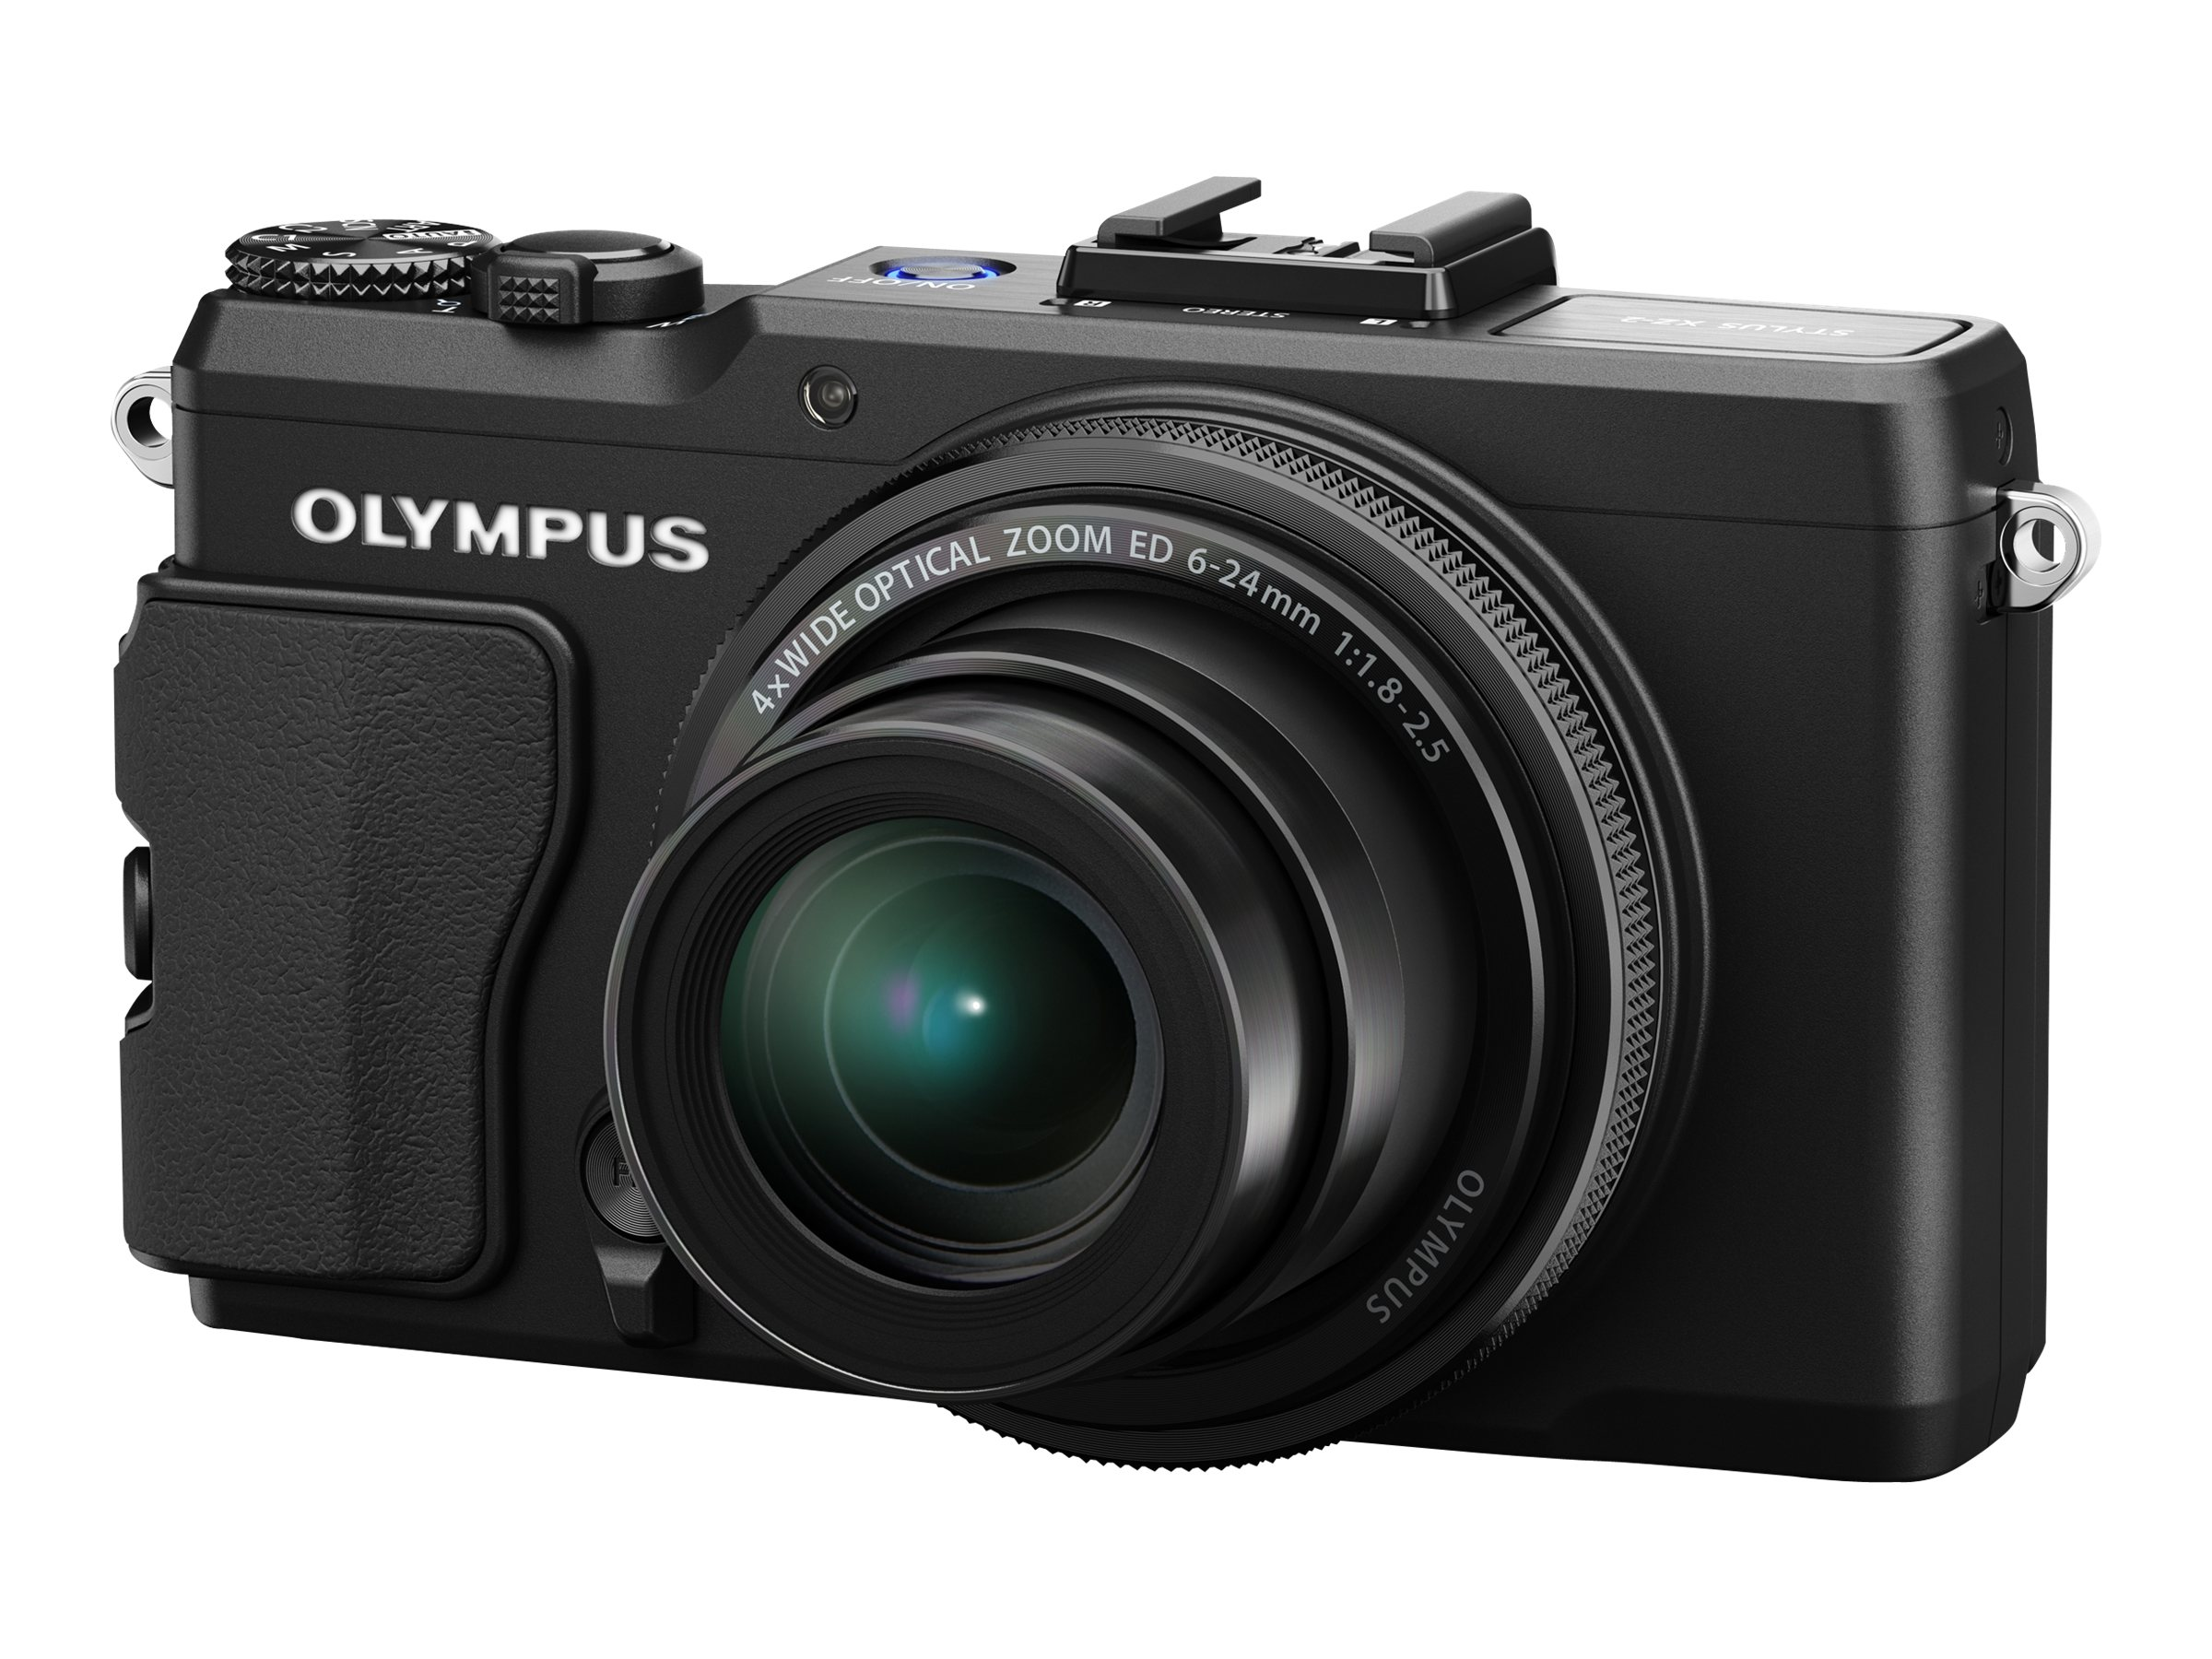 Olympus STYLUS XZ-2 iHS Digital Camera, 12MP, 4x Zoom, Black, V101020BU000, 14836263, Cameras - Digital - Point & Shoot